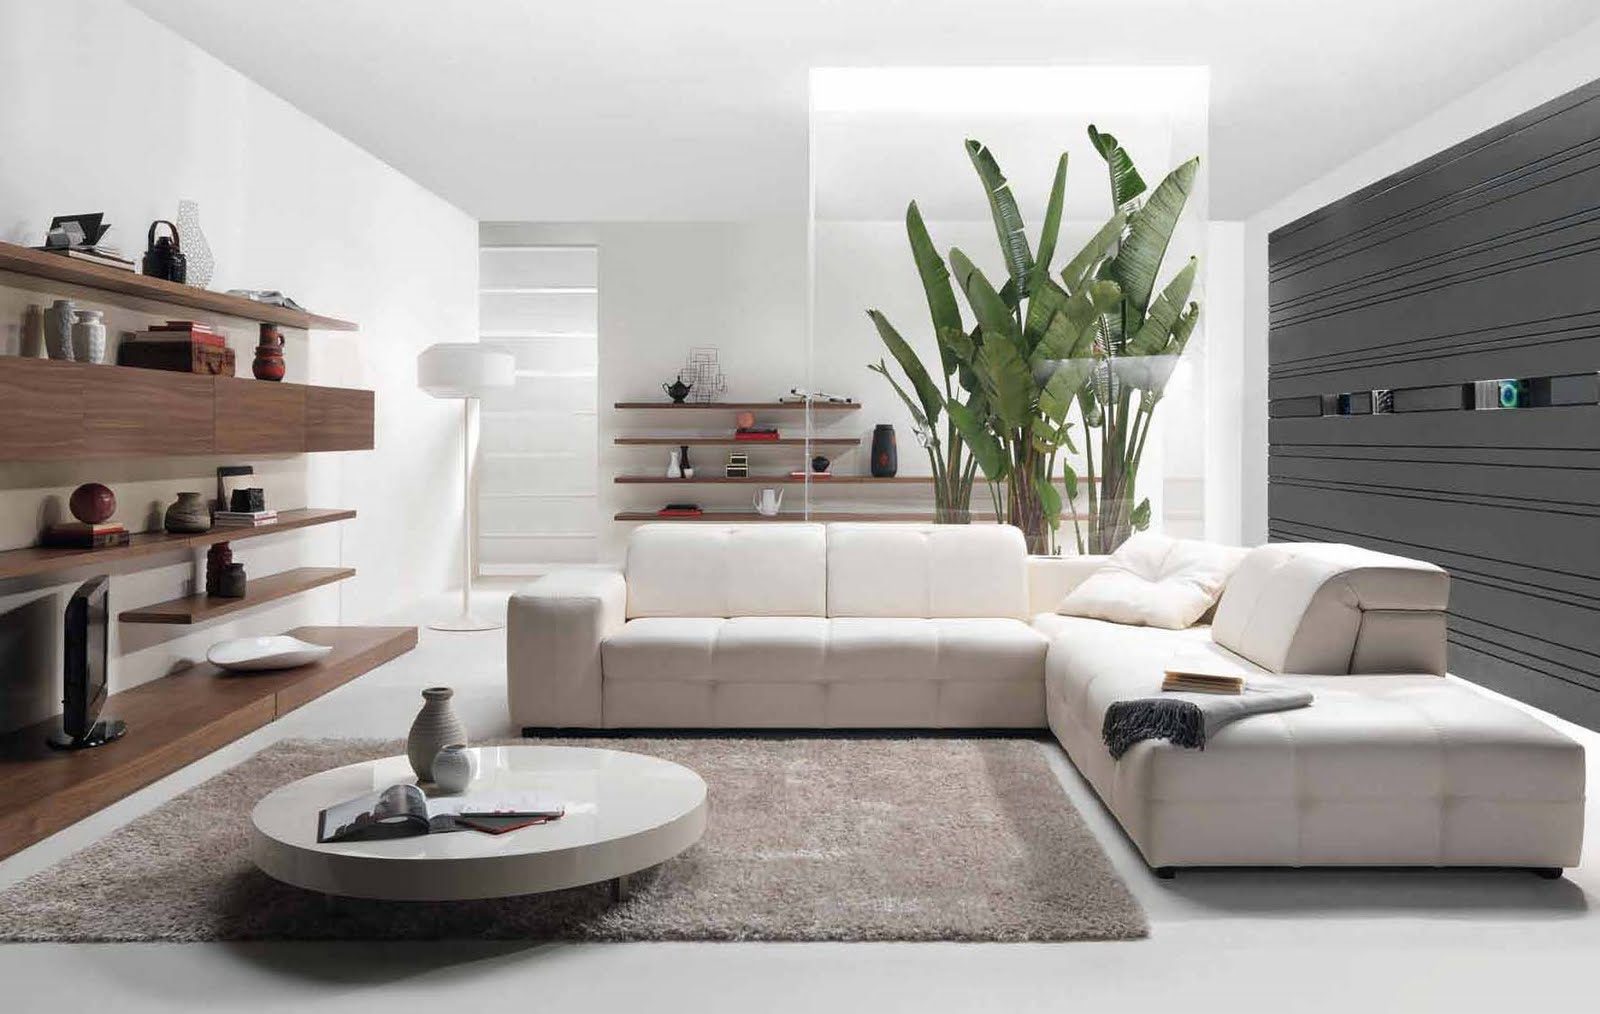 round white coffee table and white sectional sofa on grey carpet rug in simple living room use natural stone wall to decorate